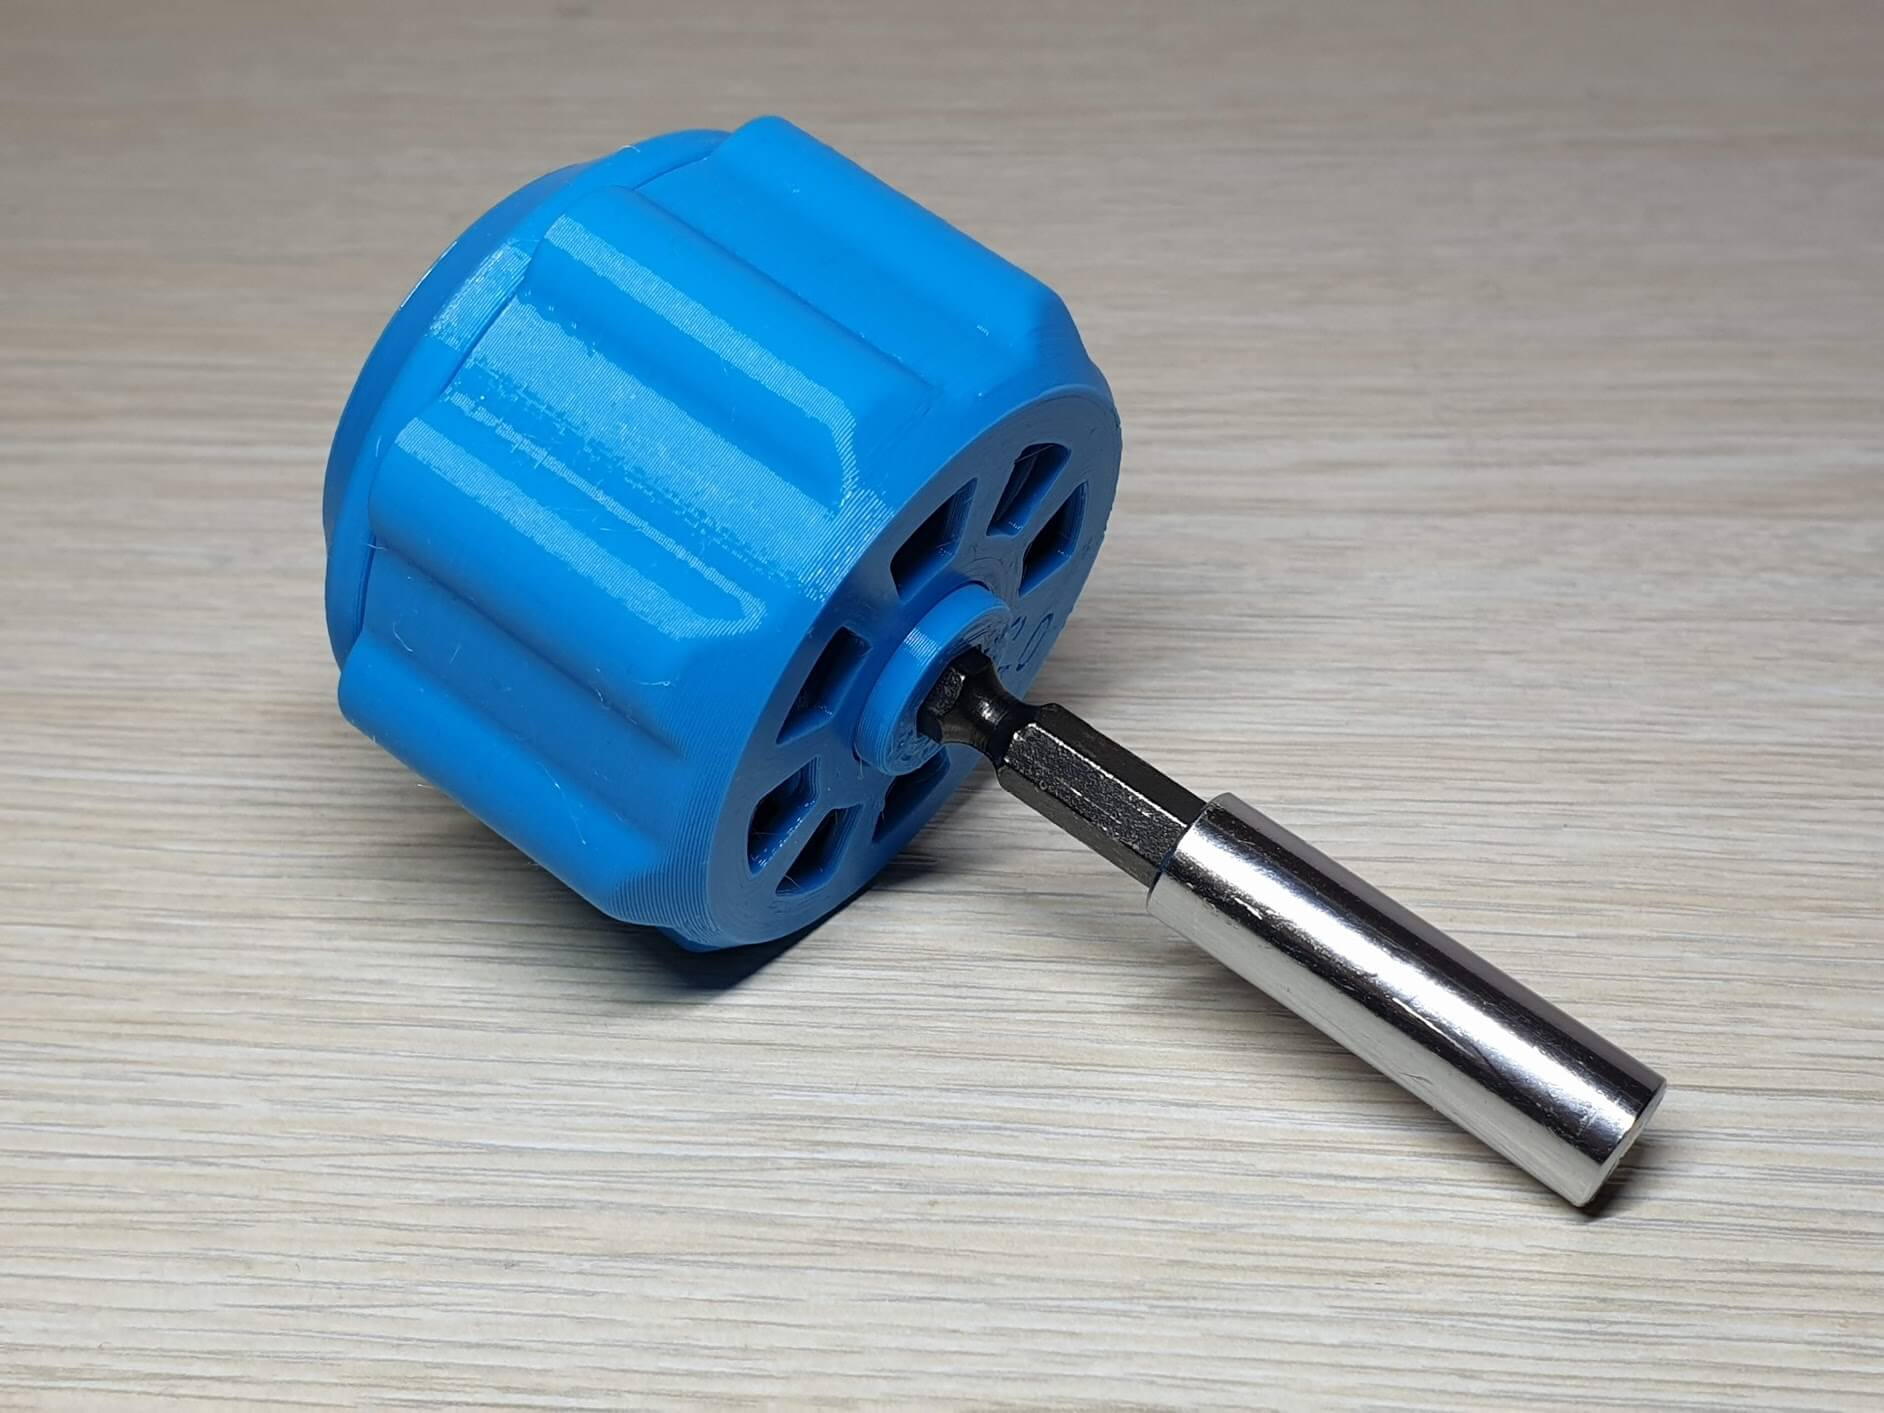 Torque Wrench - How to Change 3D Printer Nozzle